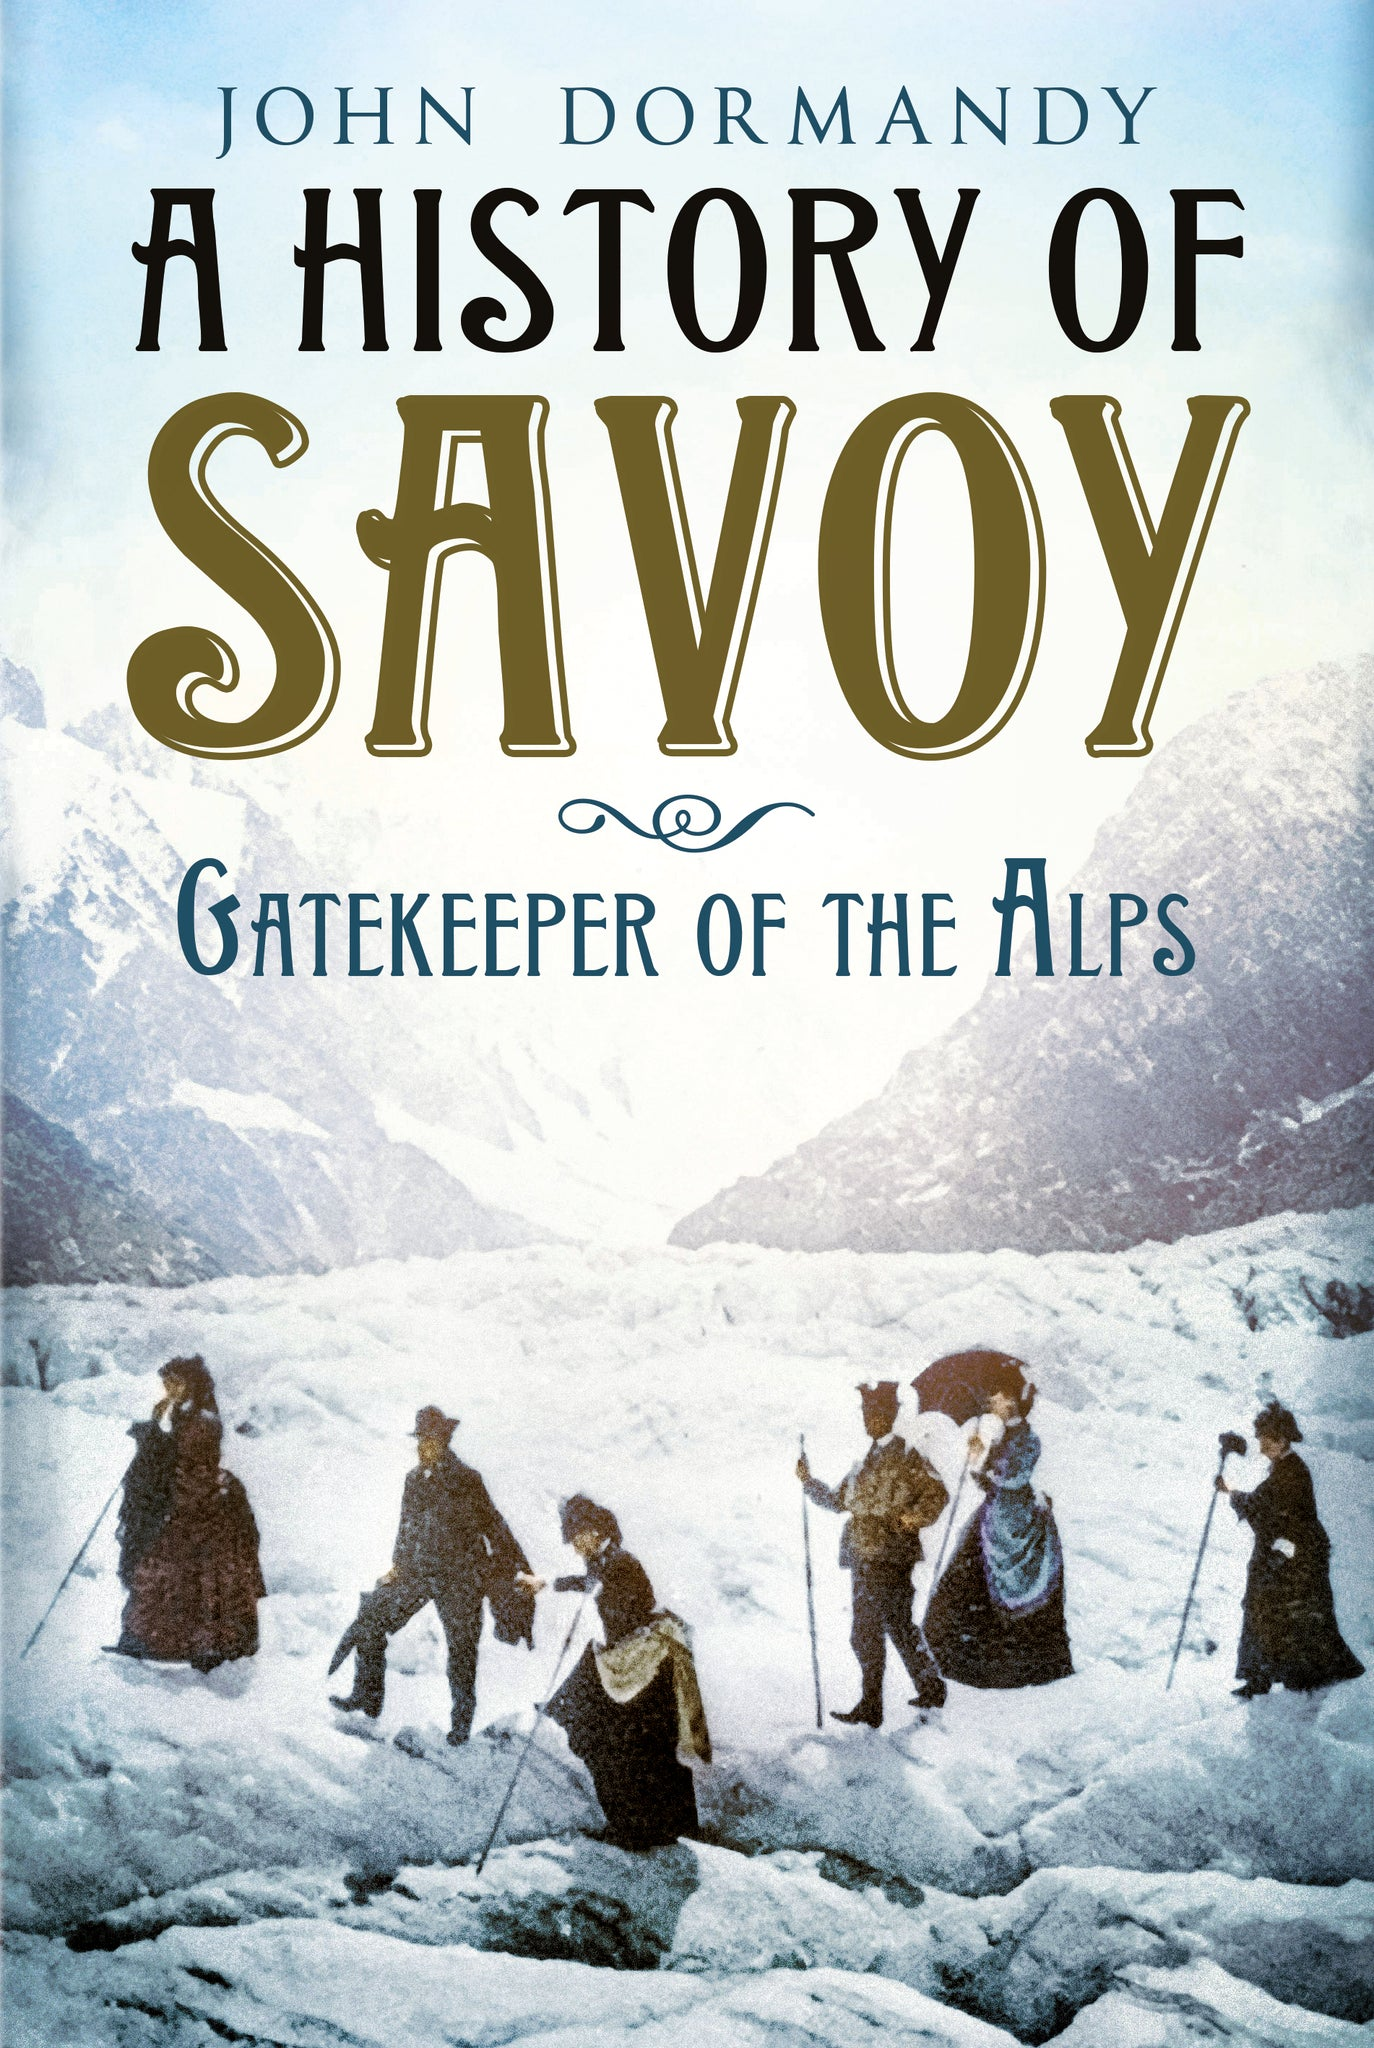 A History of Savoy: Gatekeeper of the Alps - available from Fonthill Media